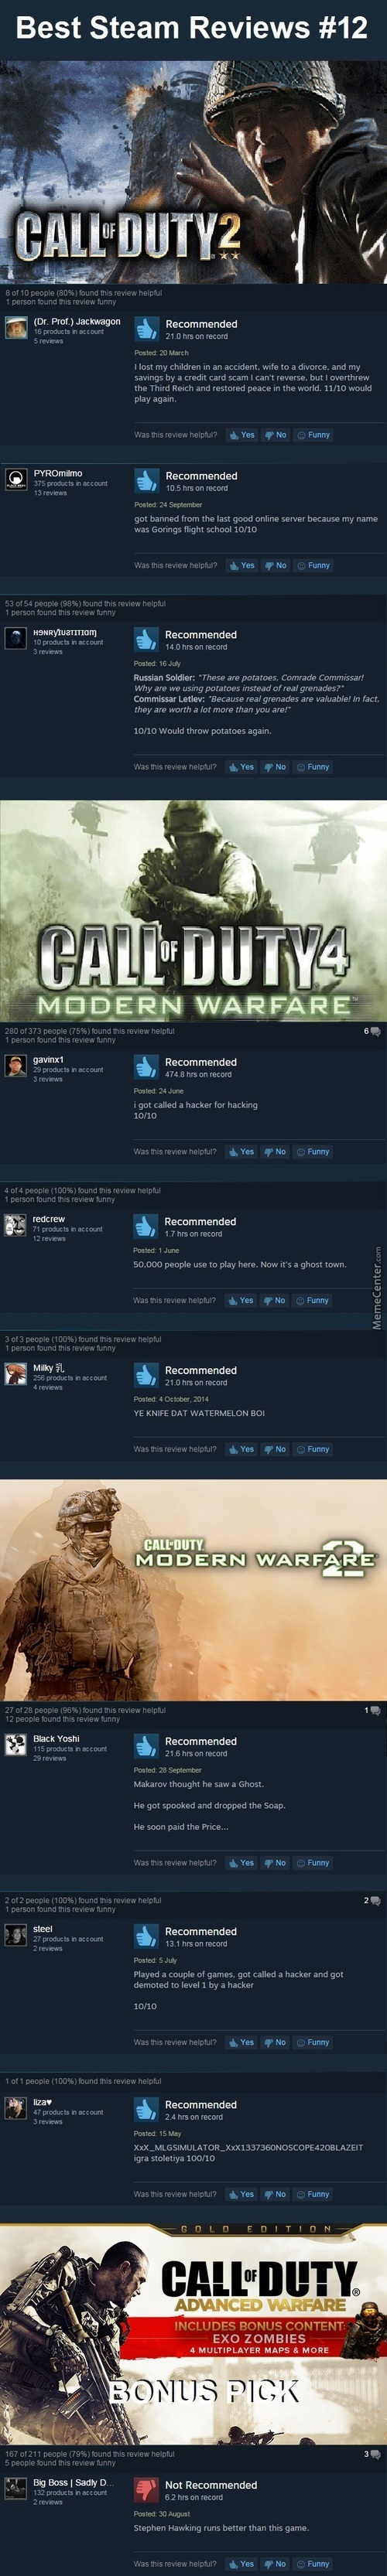 Best Steam Reviews #12 - The Best Cod Of Dooties